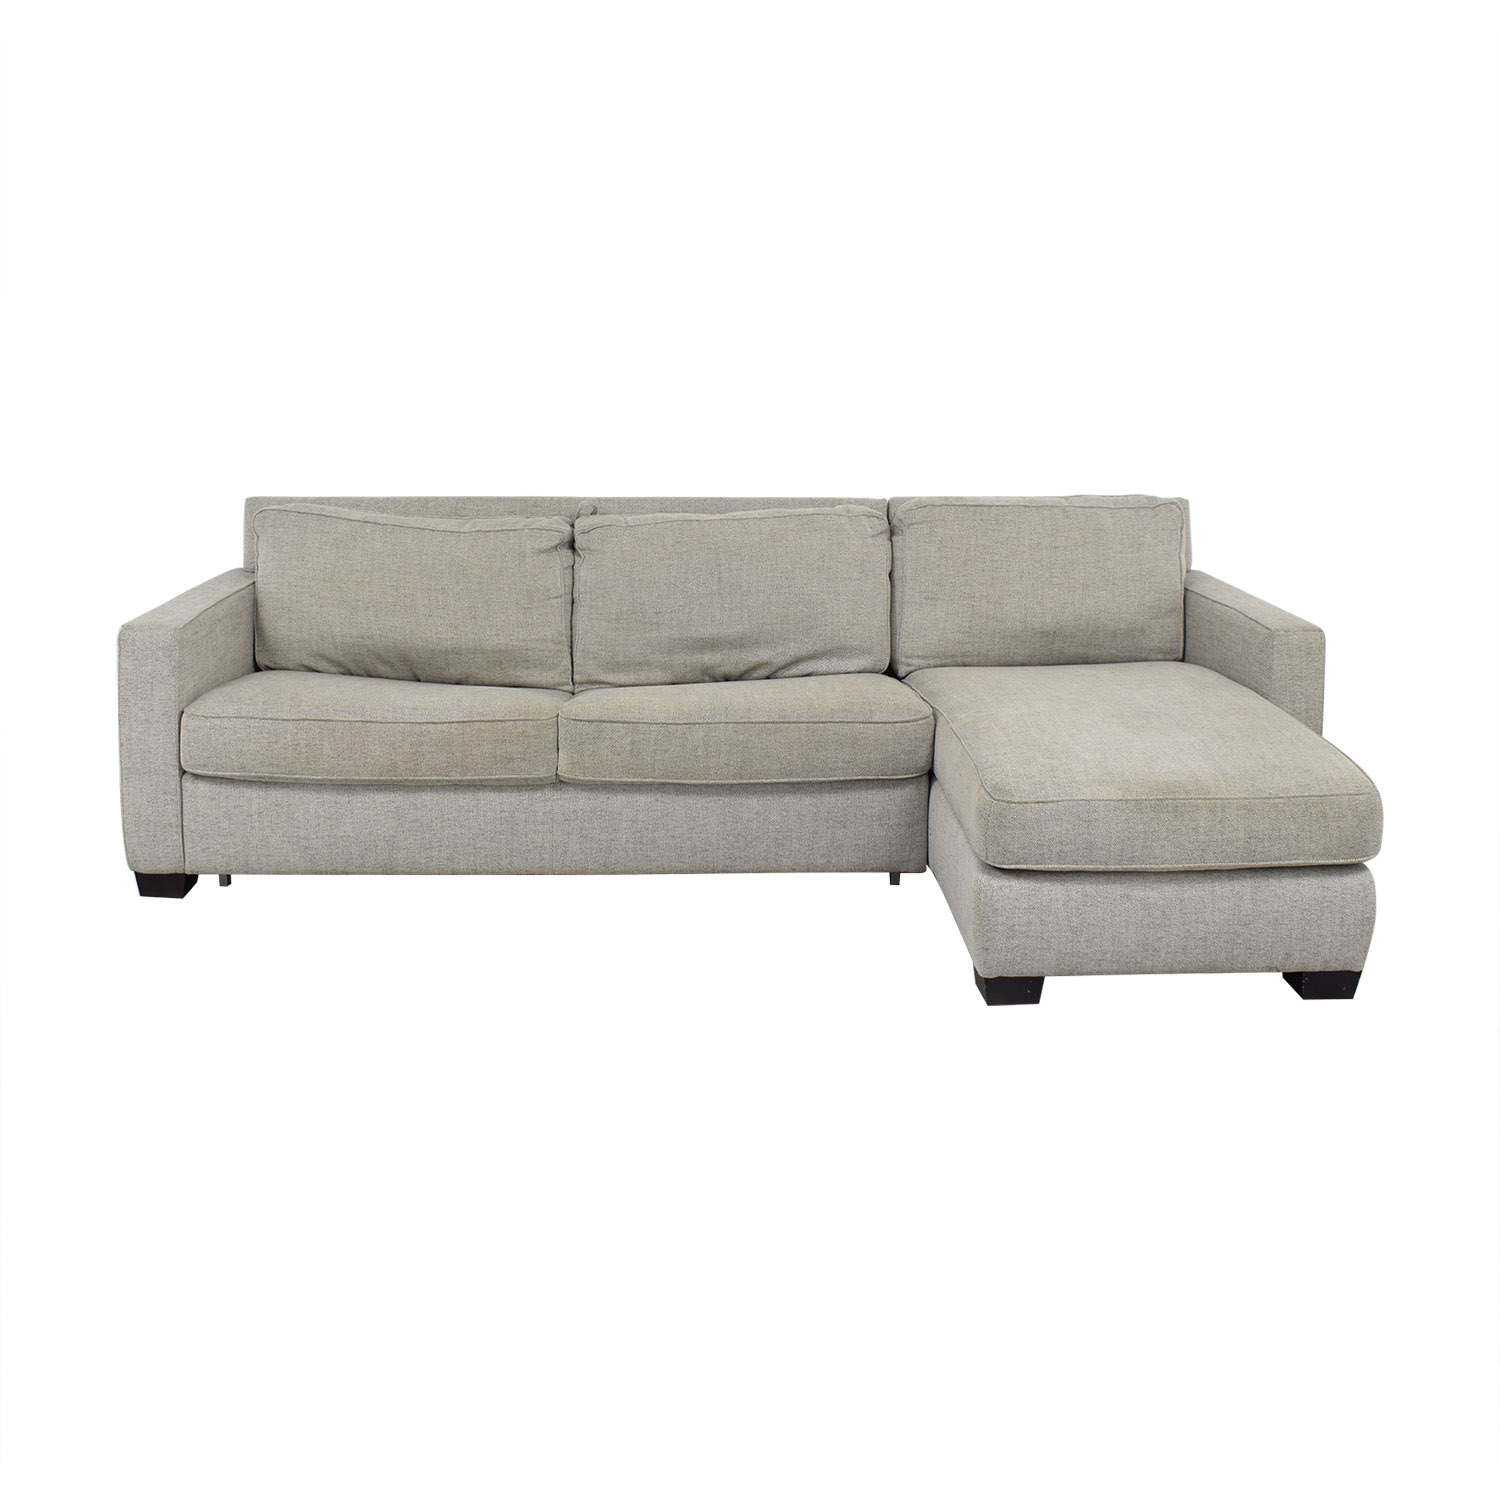 shop West Elm West Elm Henry Two Piece Full Sleeper Sectional with Storage online